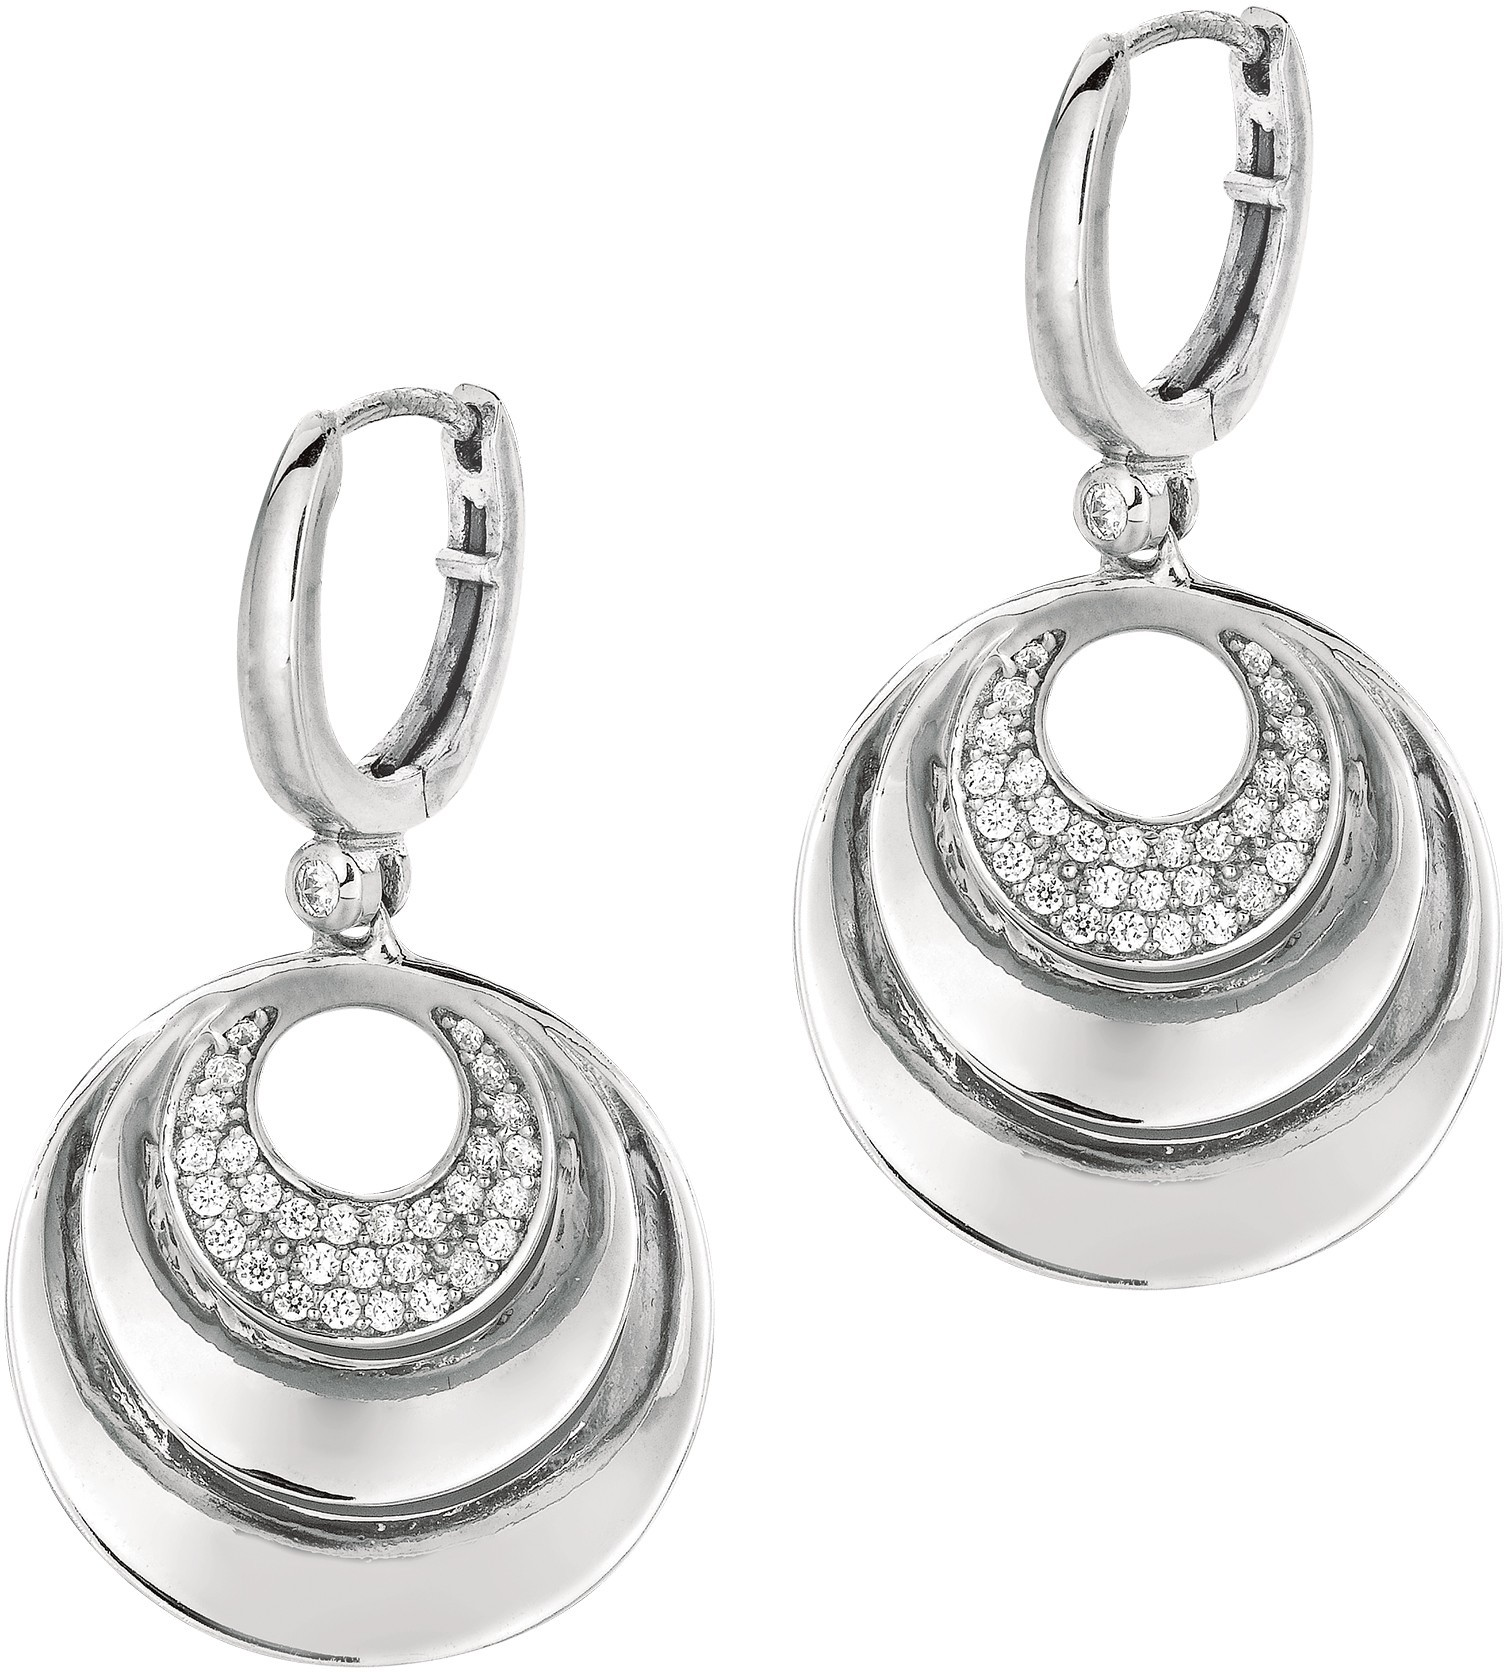 Silver Rhodium Plated Shiny 3 Graduated Open Circle Earrings w/ Clear CZ - DISCONTINUED